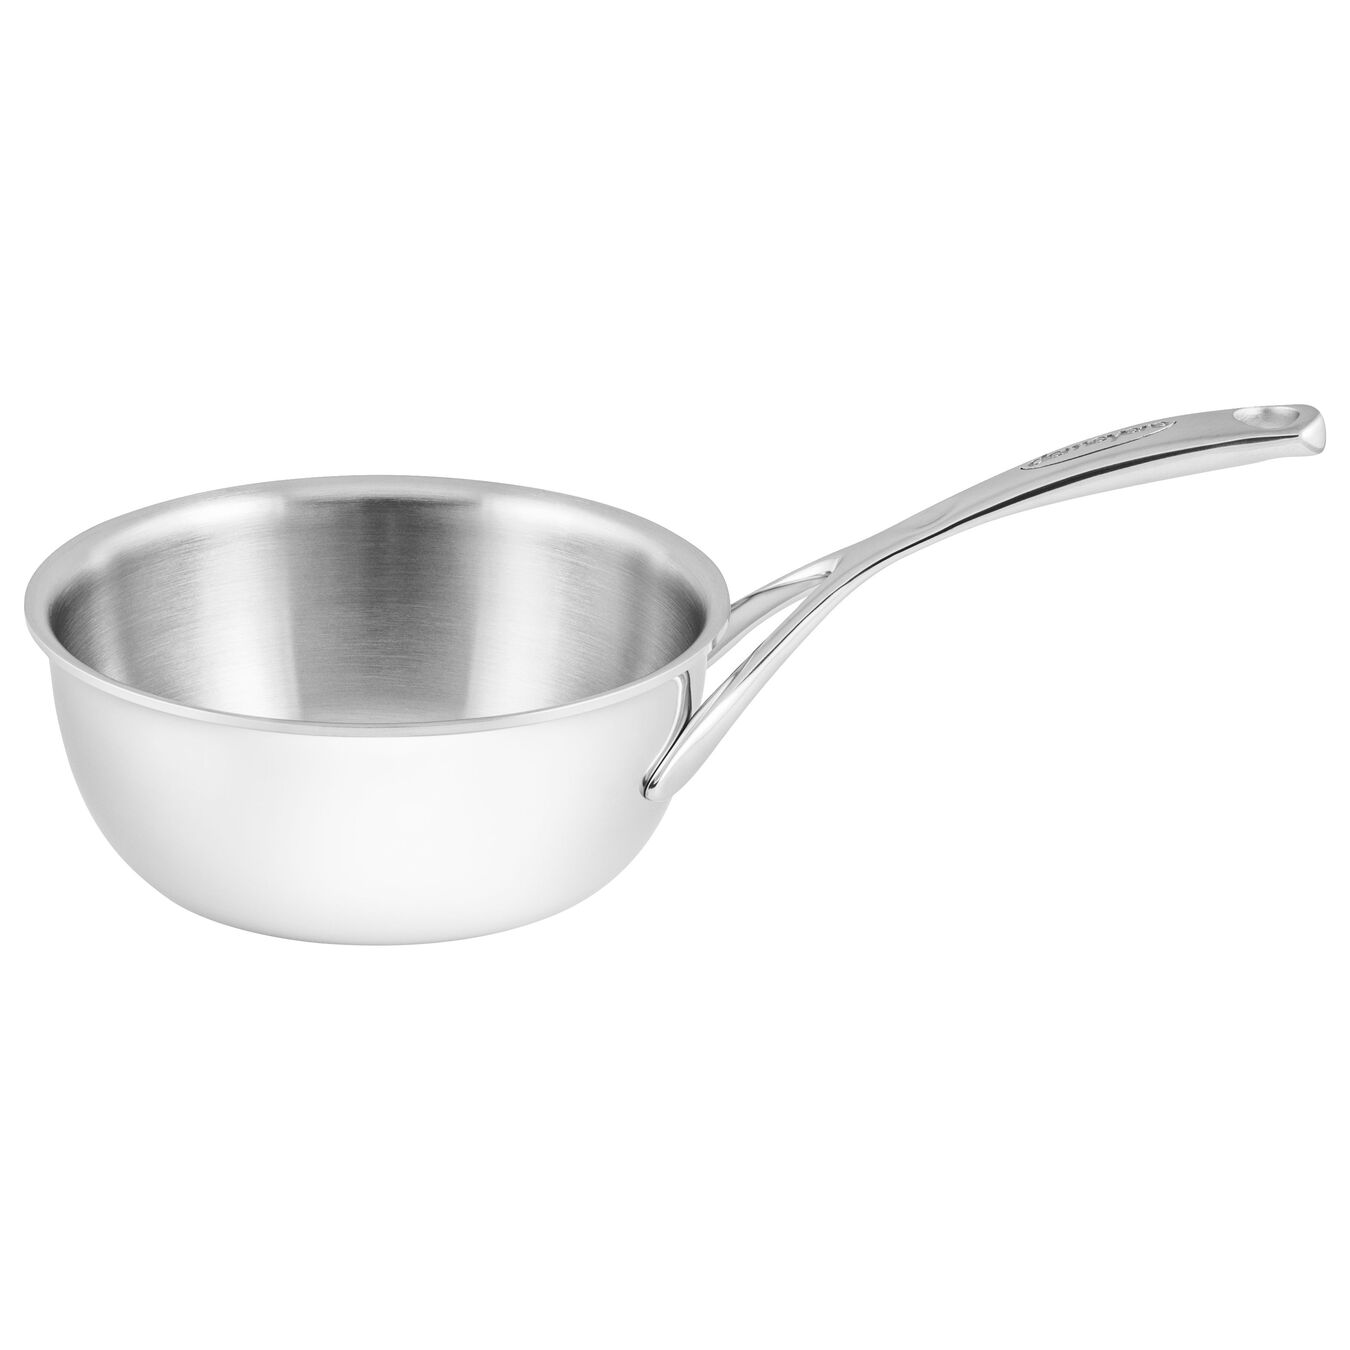 1.5 L 18/10 STAINLESS STEEL CONICAL SAUCEPAN,,large 1